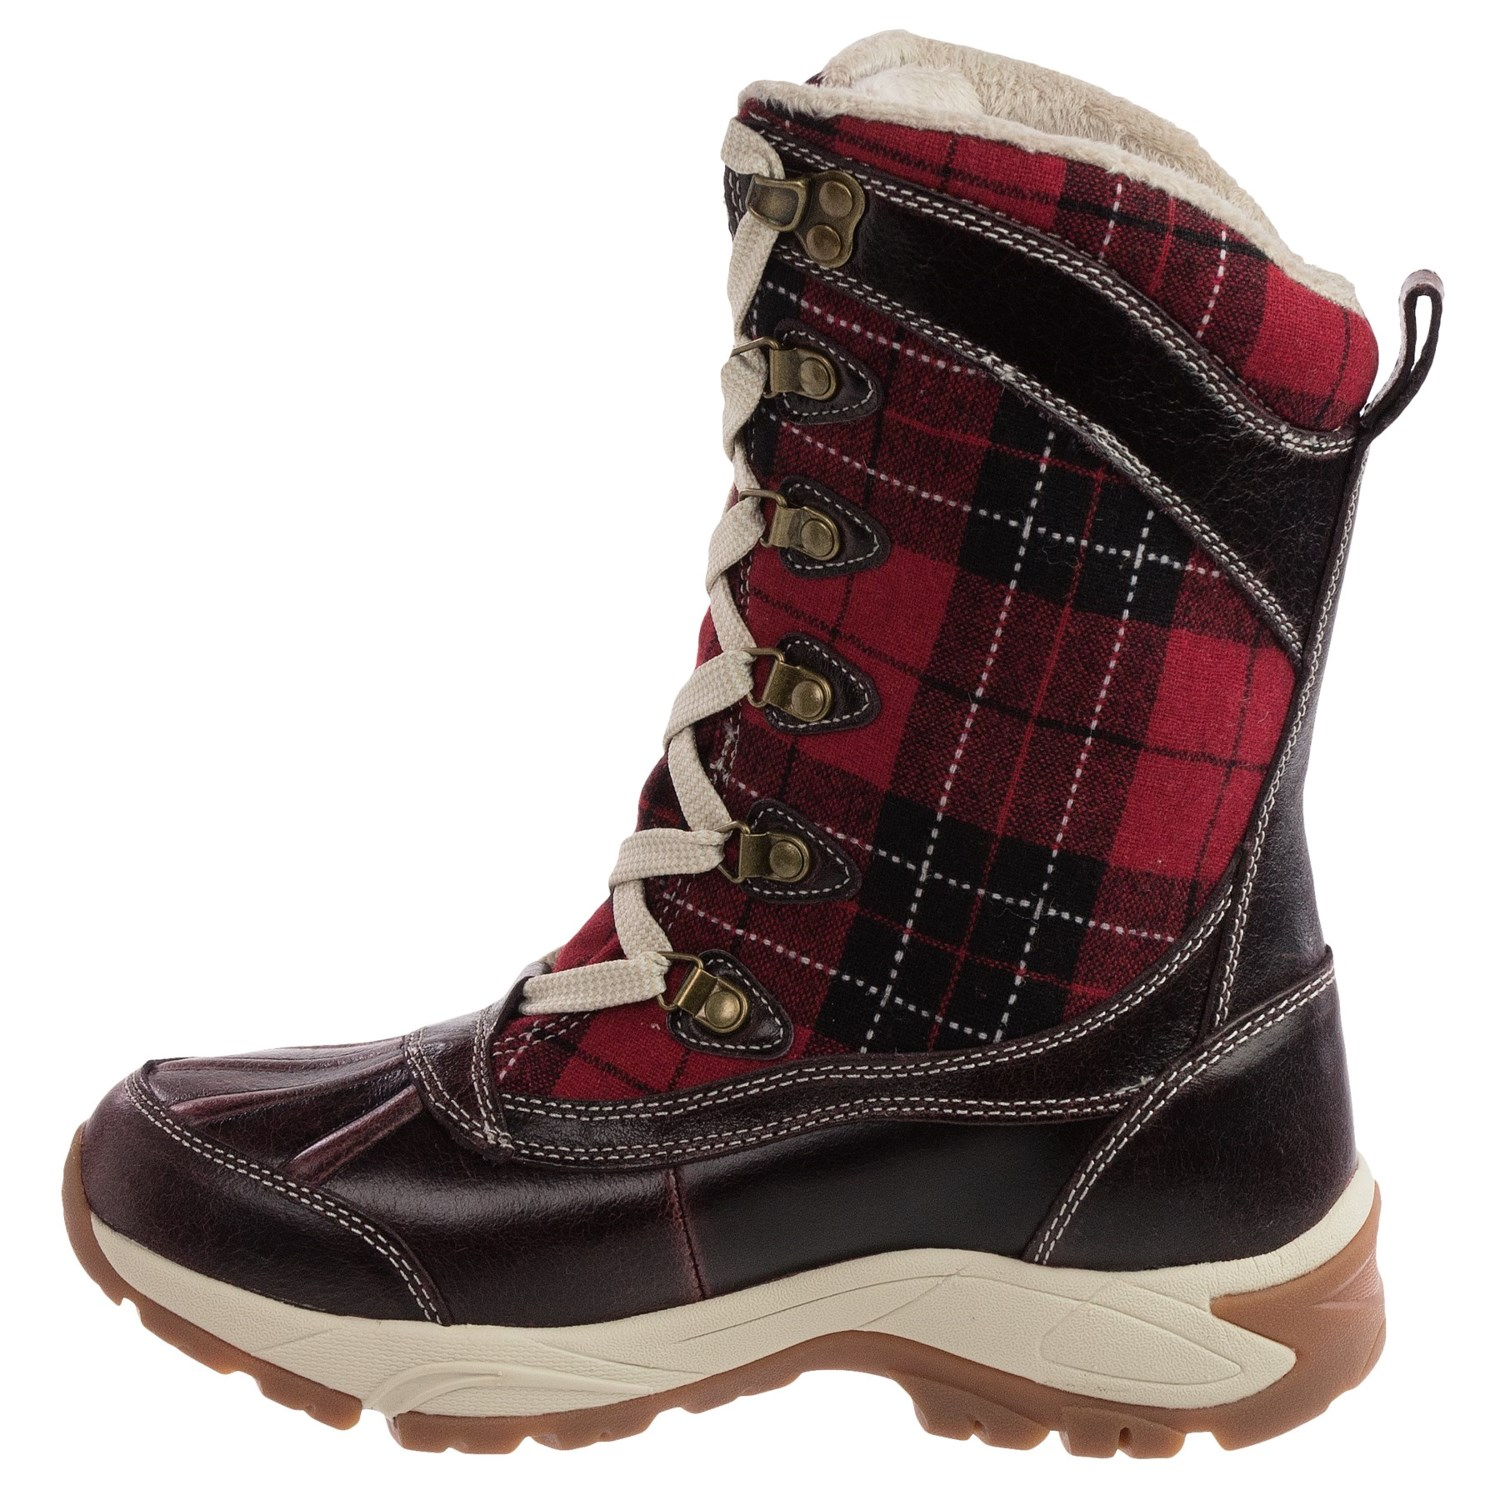 Innovative Kodiak Skyla Leather Pac Boots (For Women) - Save 79%